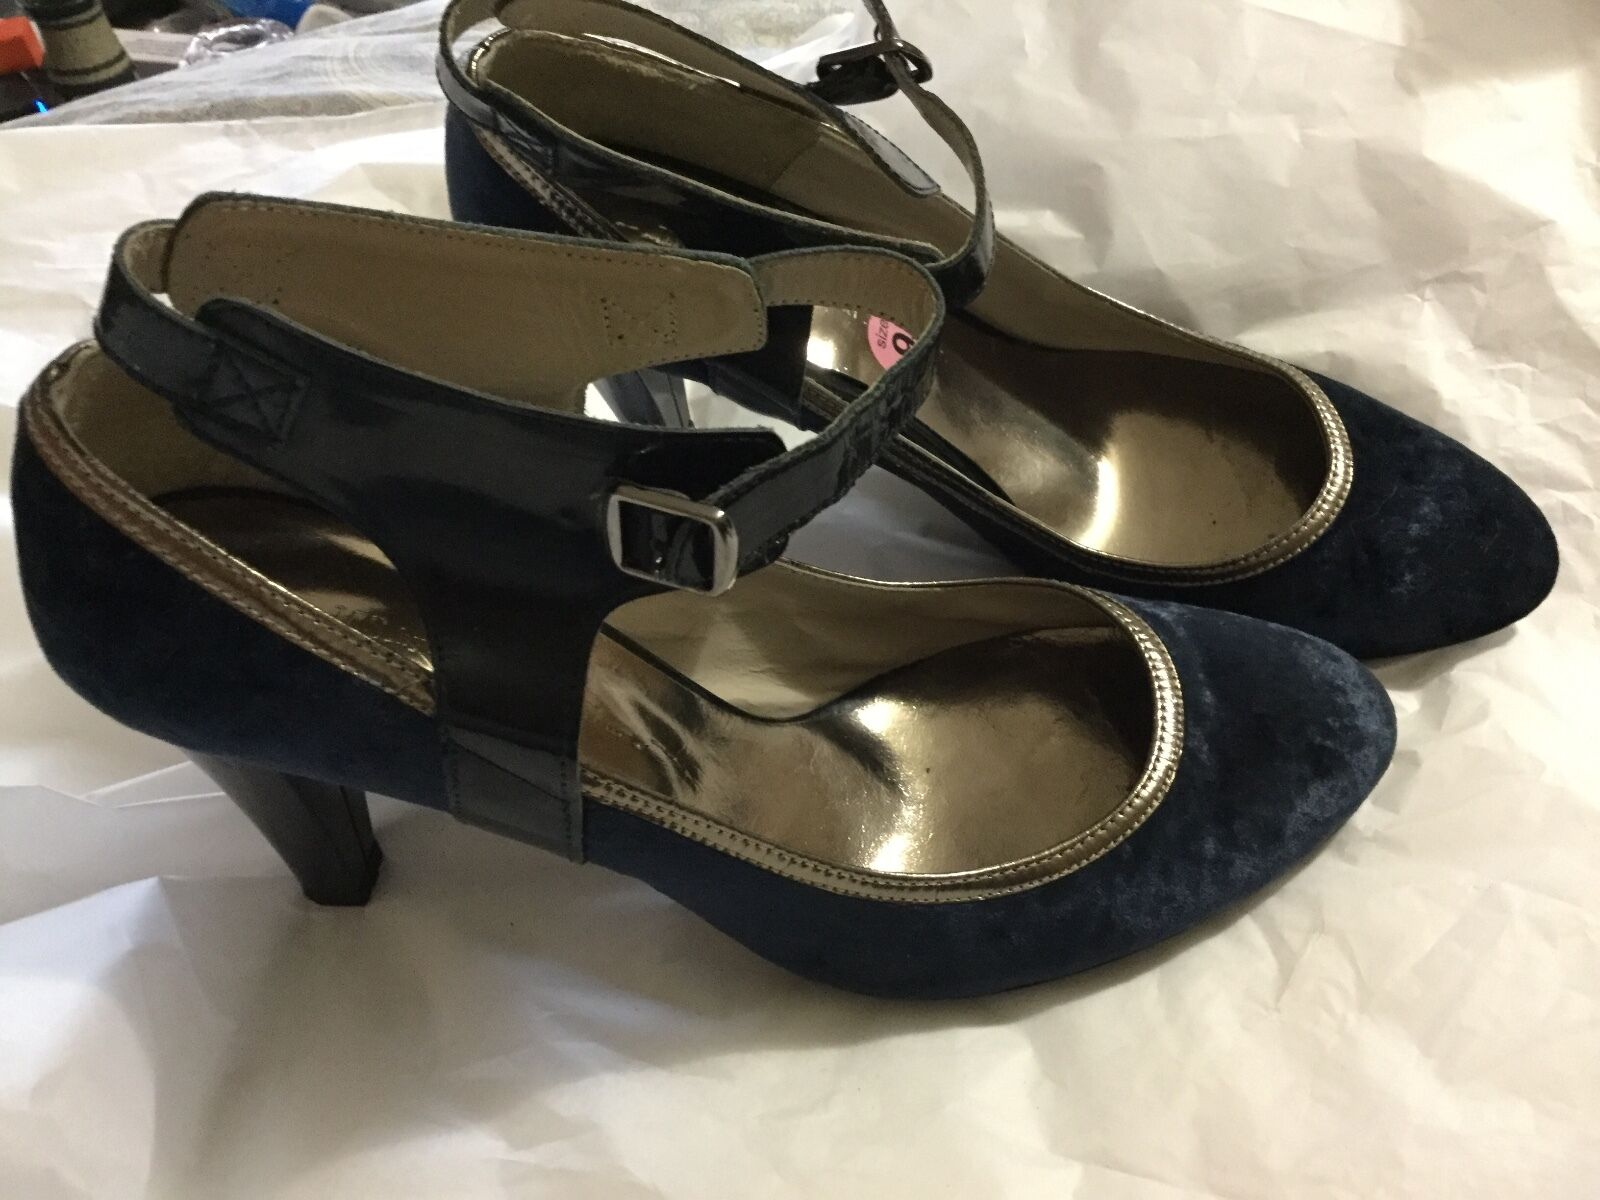 EXCELLENT CONDITION Martine Sitbon Velvet Pumps with Ankle Strap - - - EU 40 US 9.5 837d3f